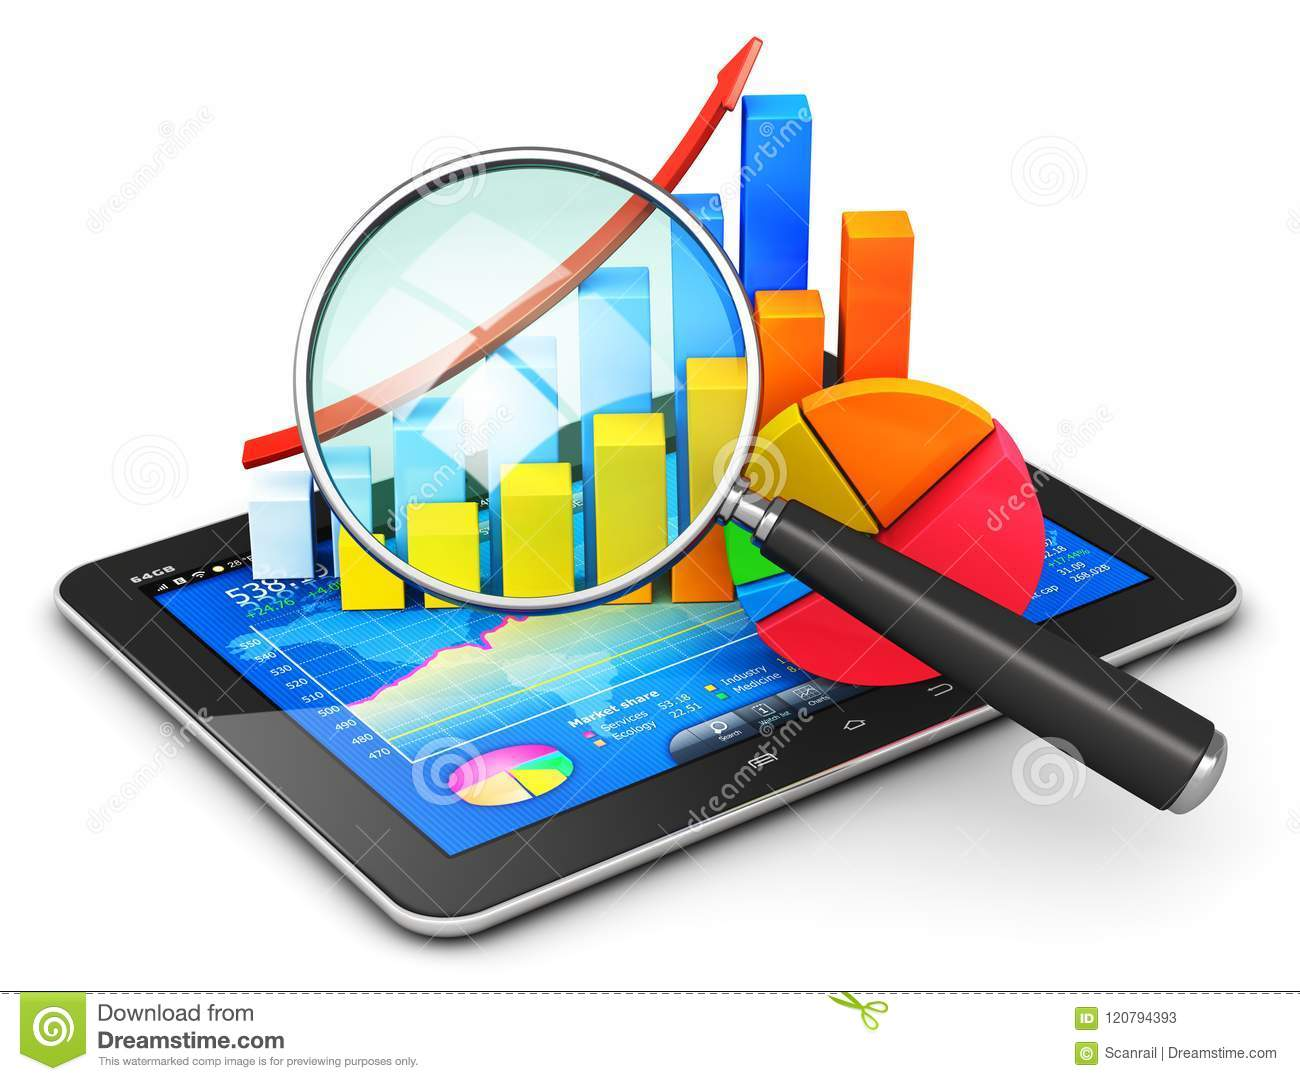 share market accounting software free download